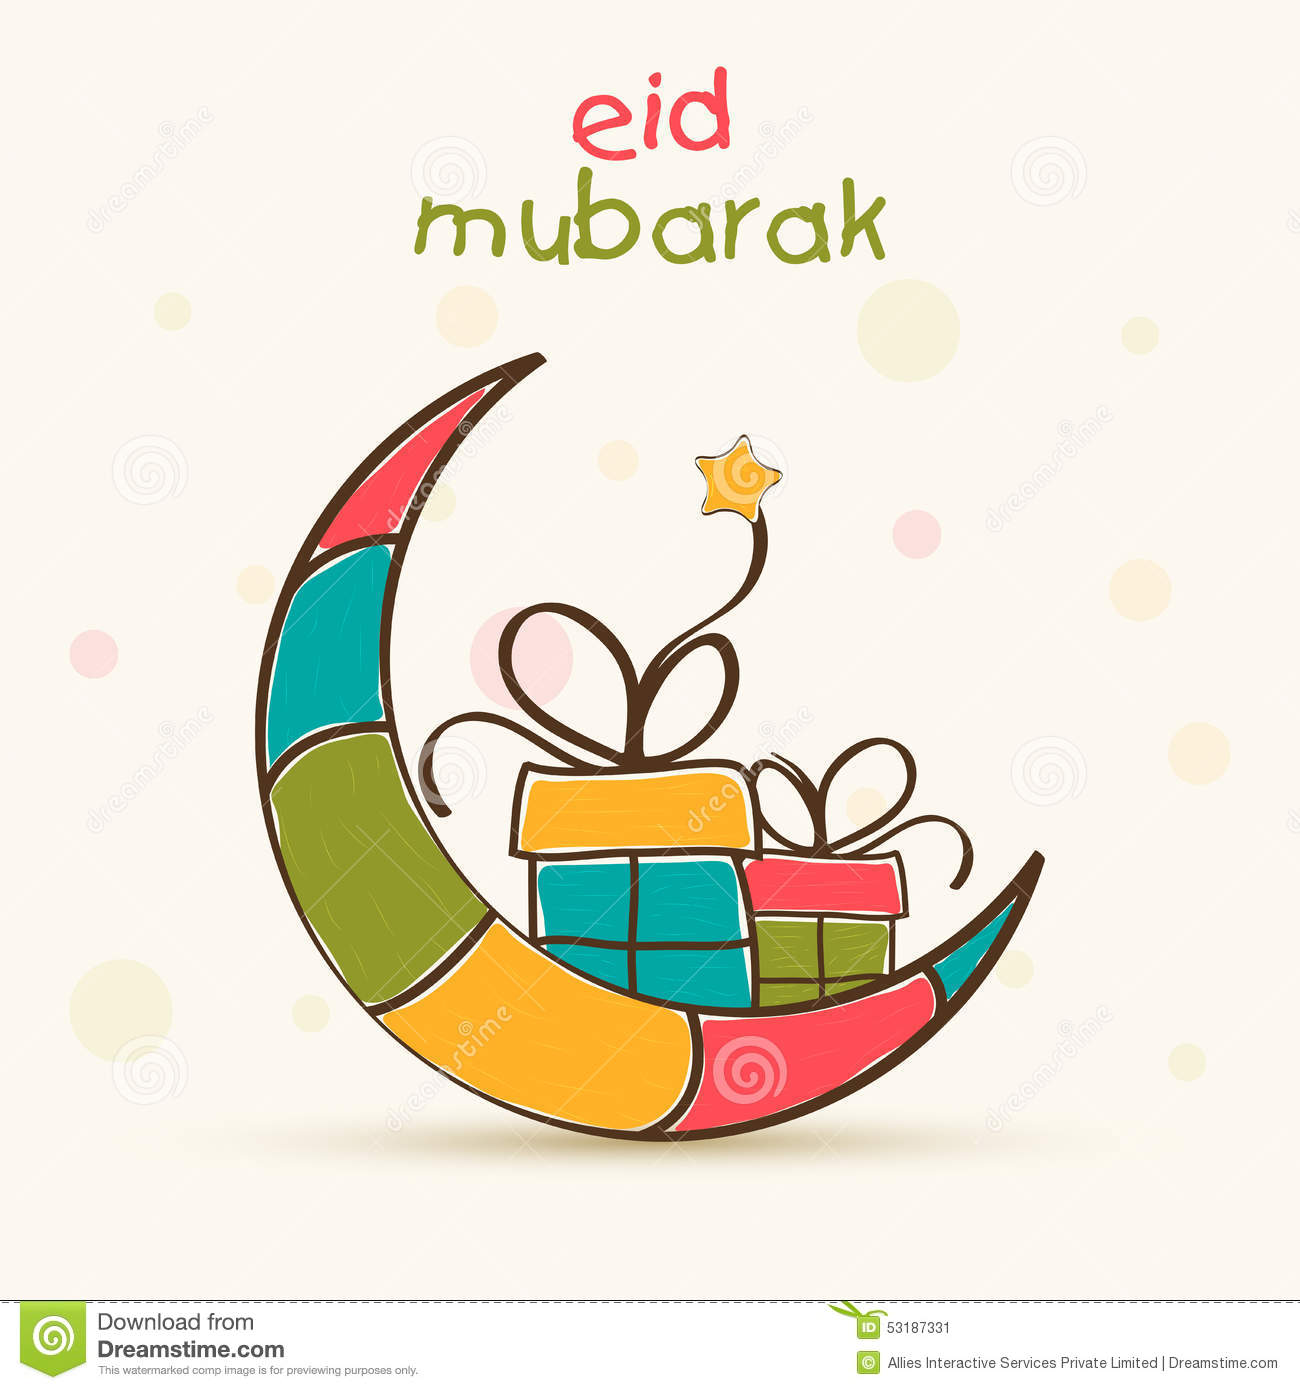 Eid Mubarak Greeting Card Cartoon Vector  CartoonDealer